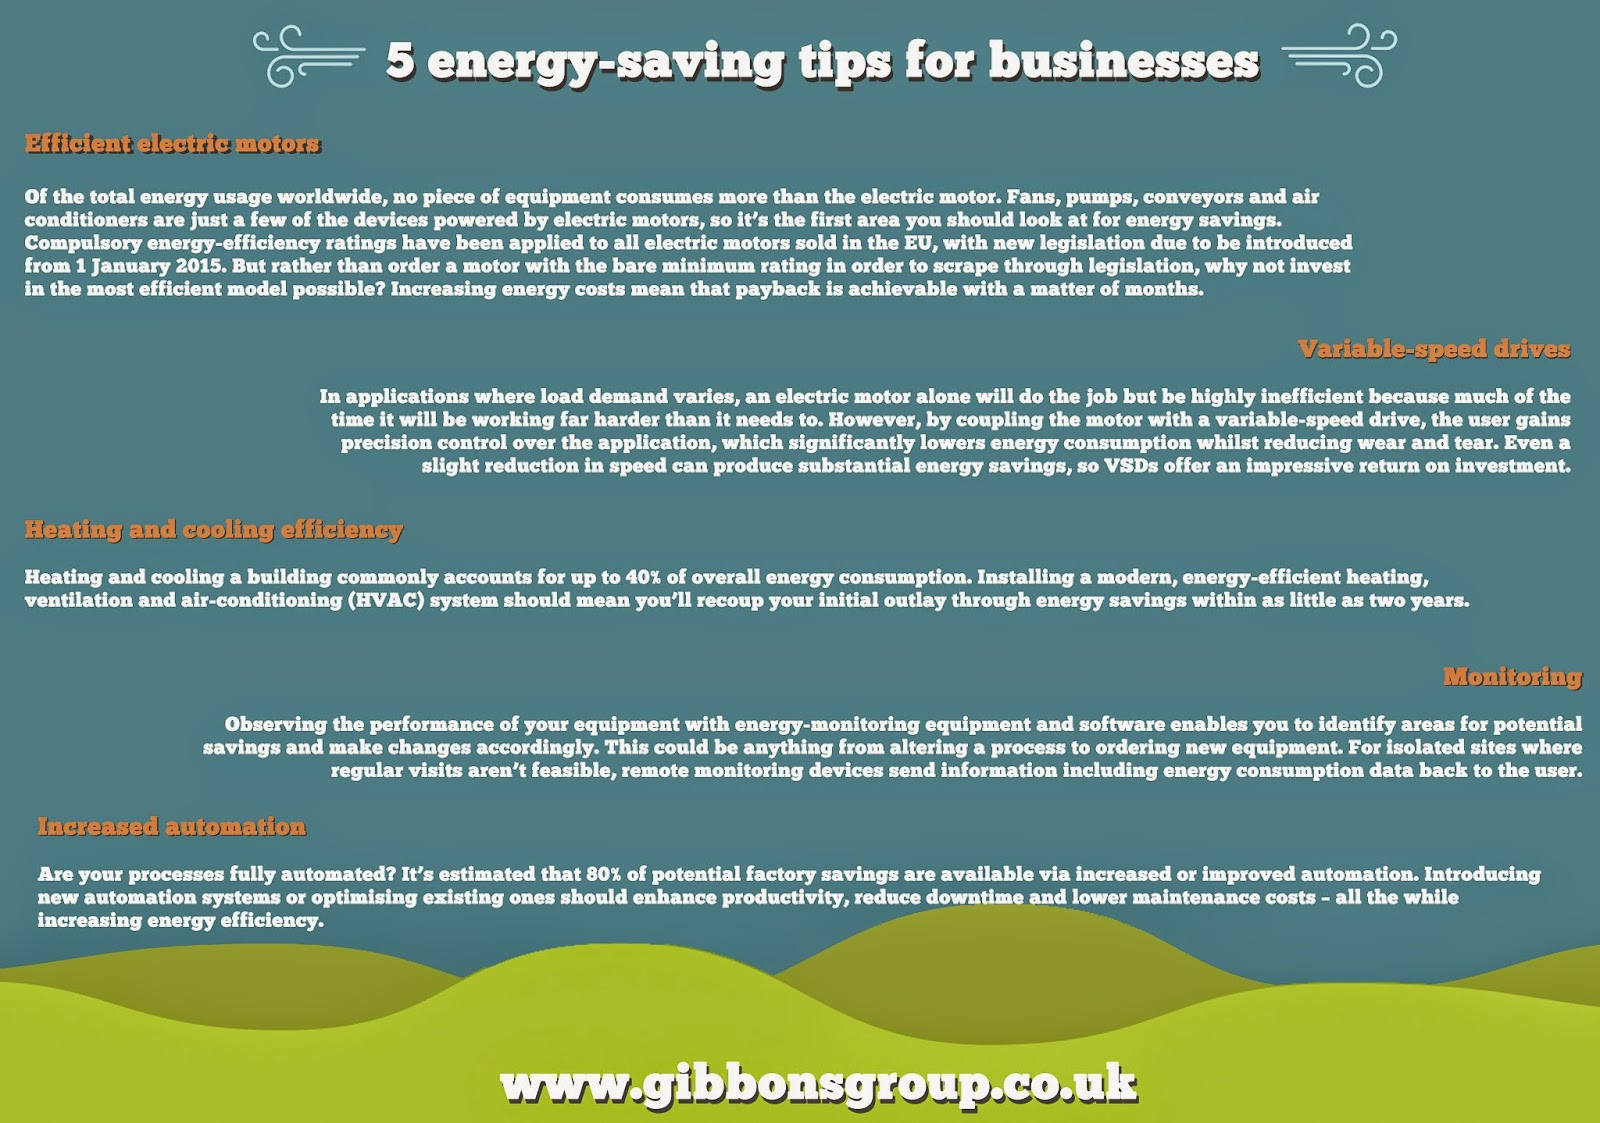 5 energy-saving tips for businesses - The Gibbons Group